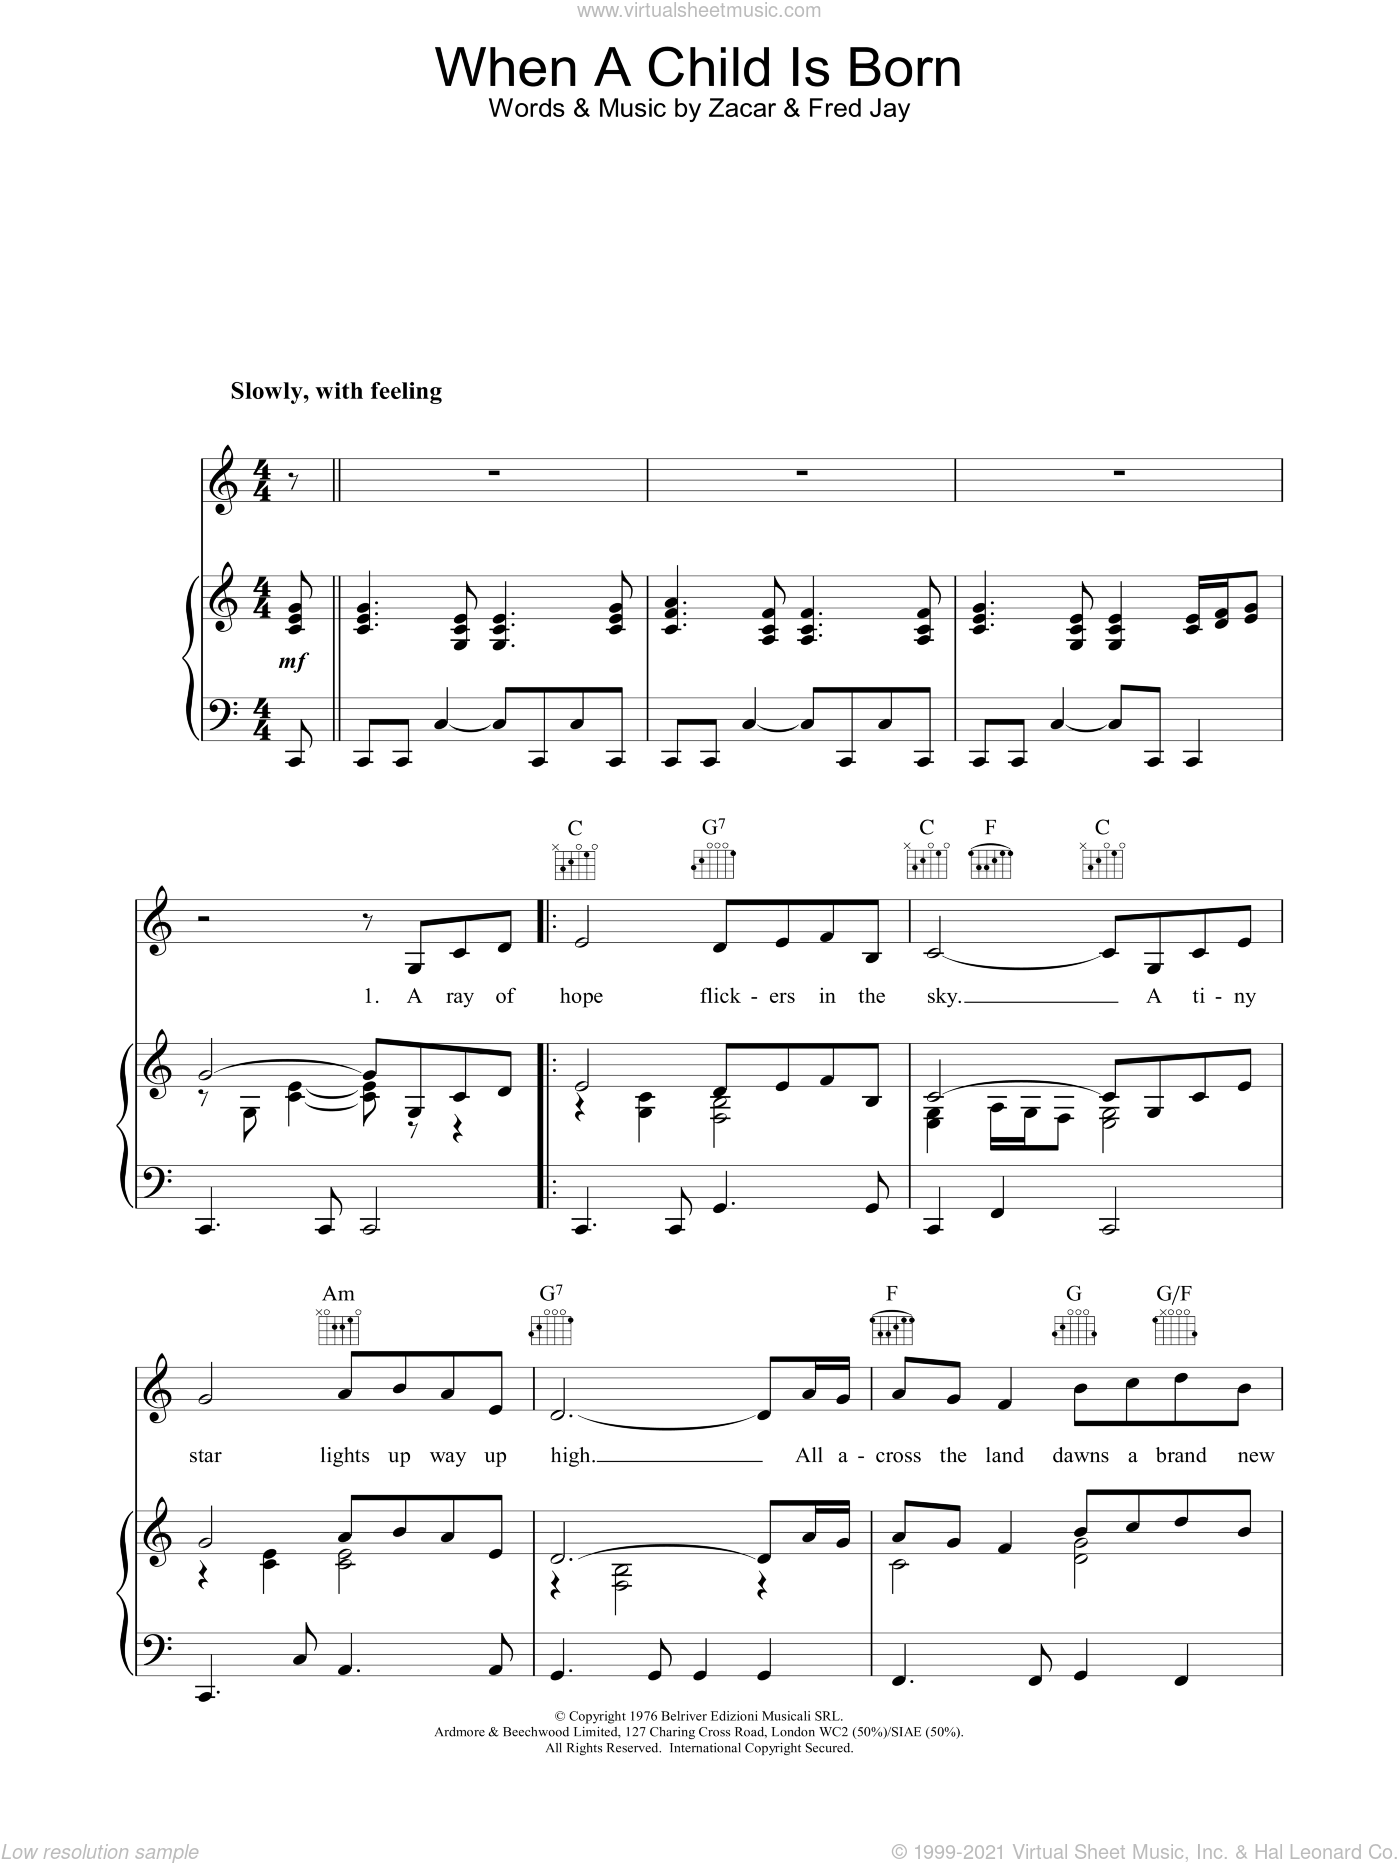 When A Child Is Born sheet music for voice, piano or guitar by Zacar, Brook Benton, Johnny Mathis, Kenny Rogers and Fred Jay. Score Image Preview.